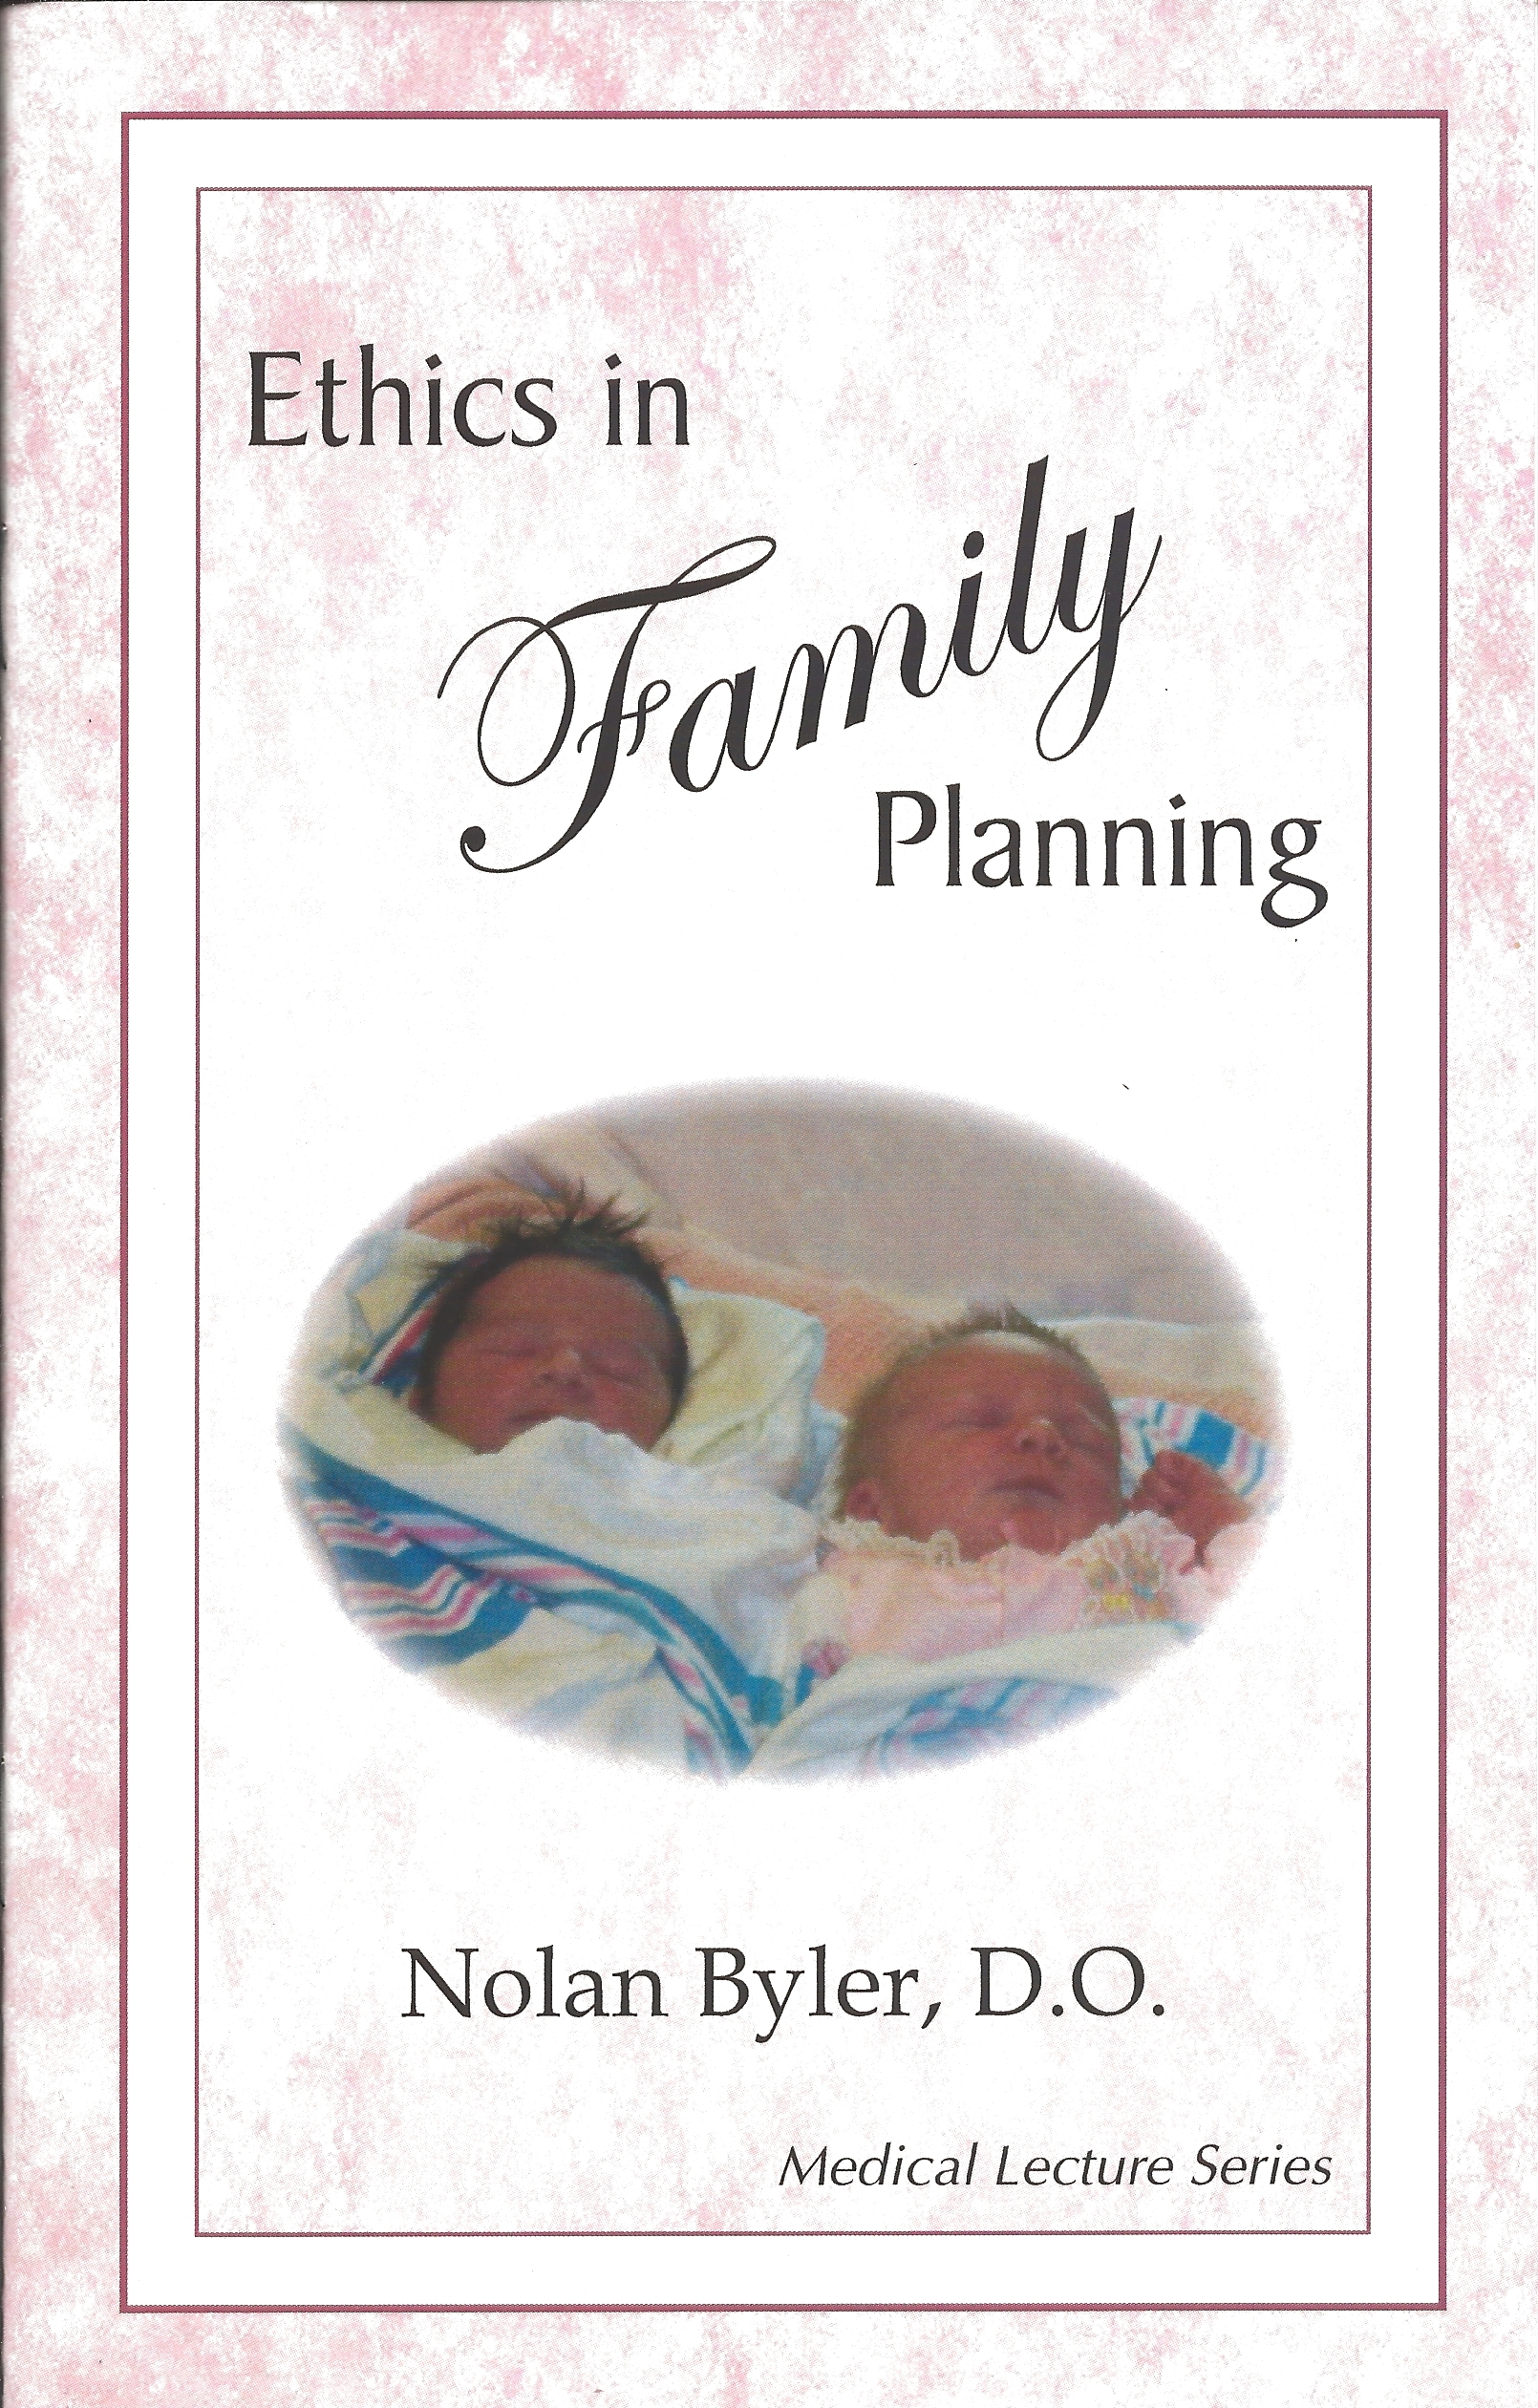 ETHICS in FAMILY PLANNING Nolan Byler, D.O.